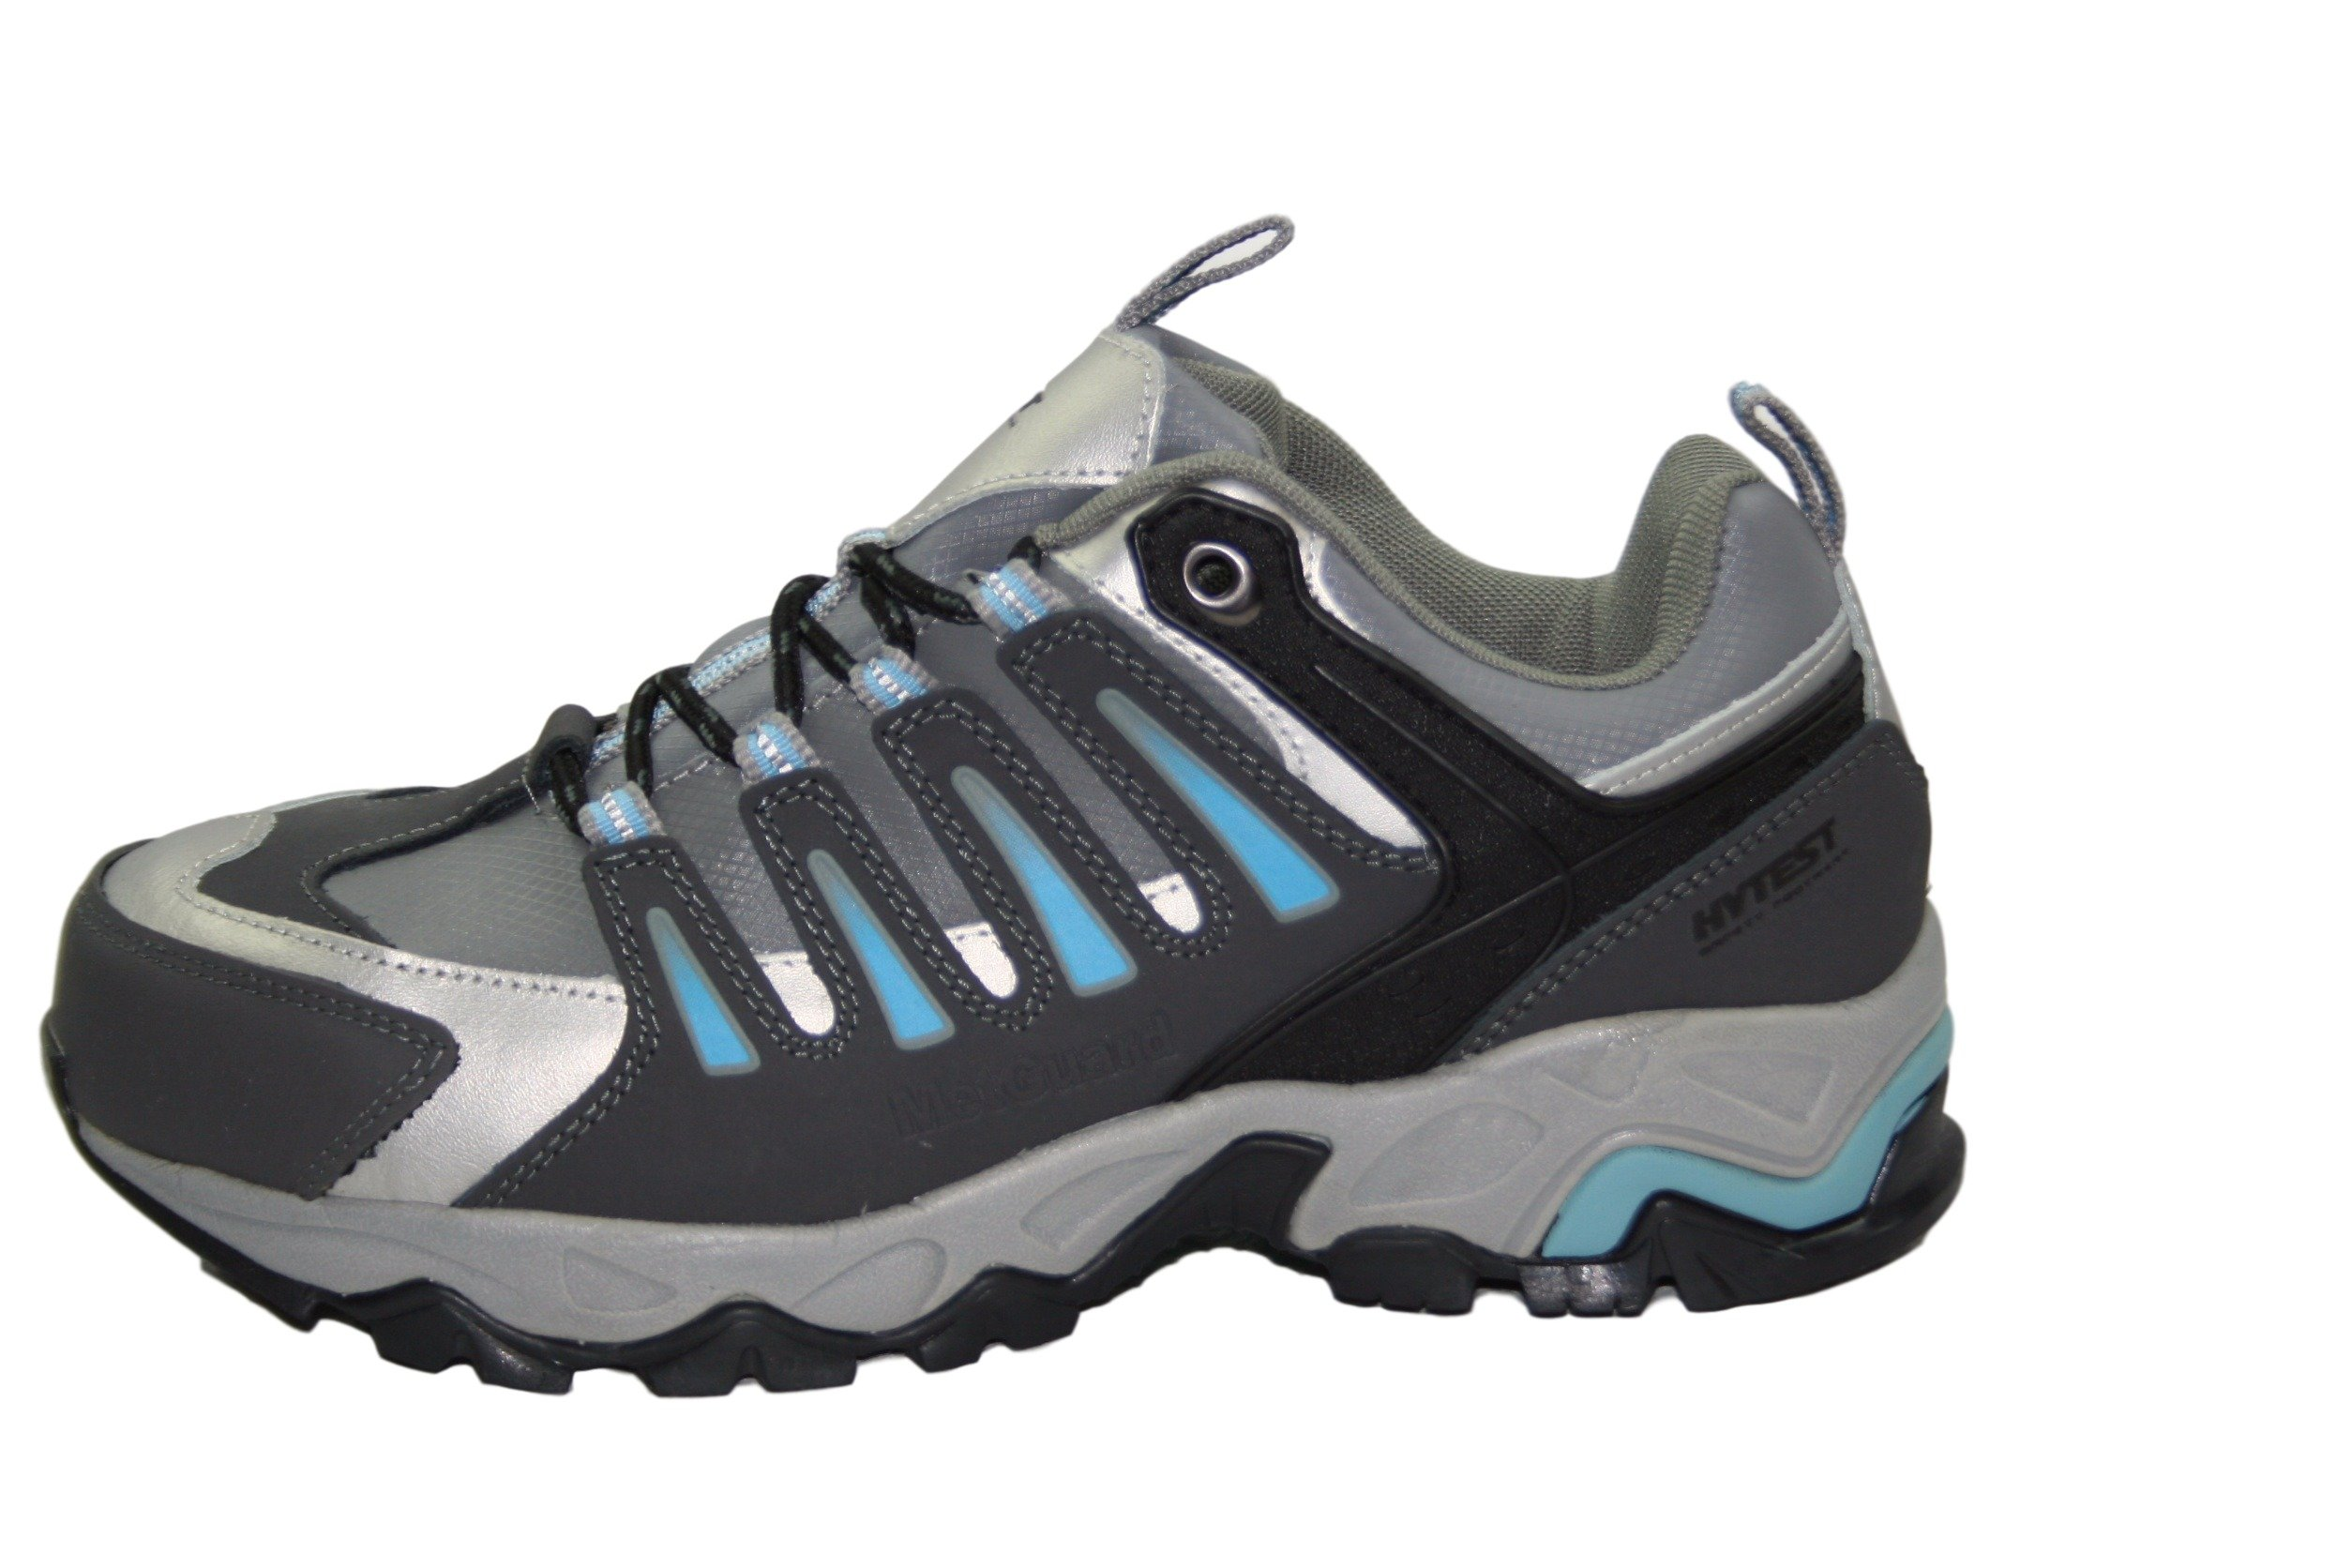 Hytest Multi-Sport Womens Safety Shoe (9.5W)